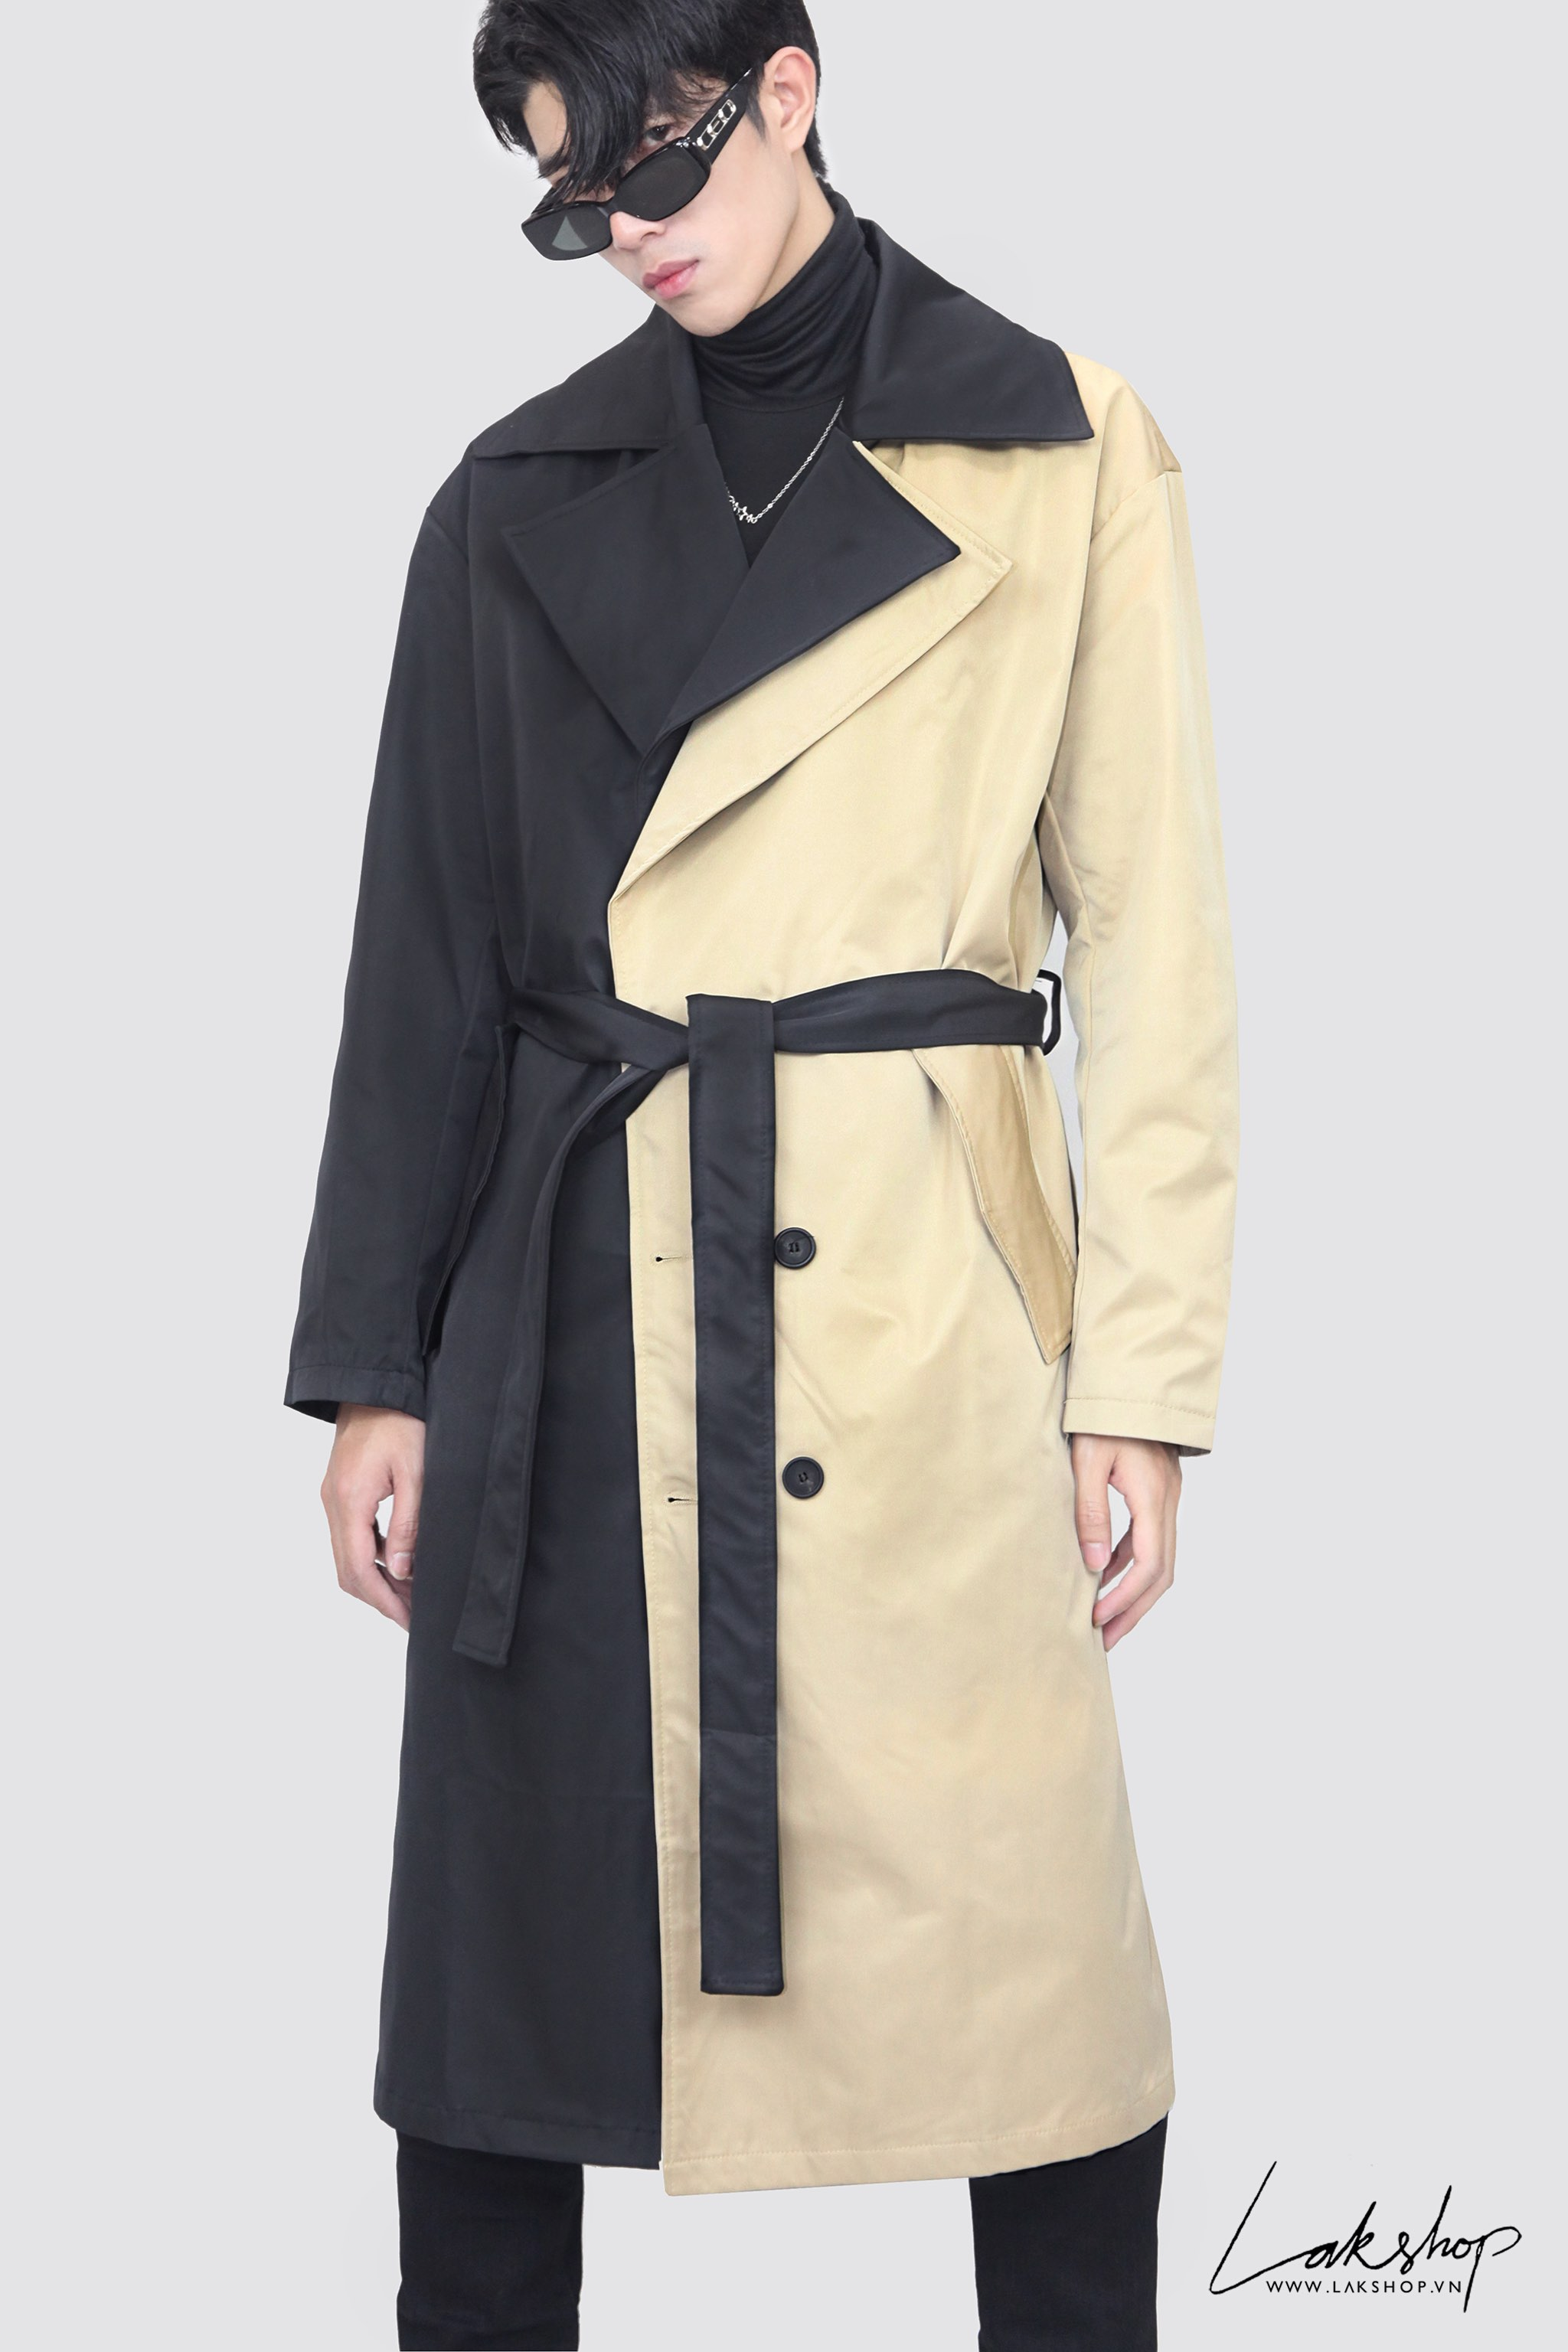 Two-Tone Black Tan Double-Breasted Trench Coat ds20